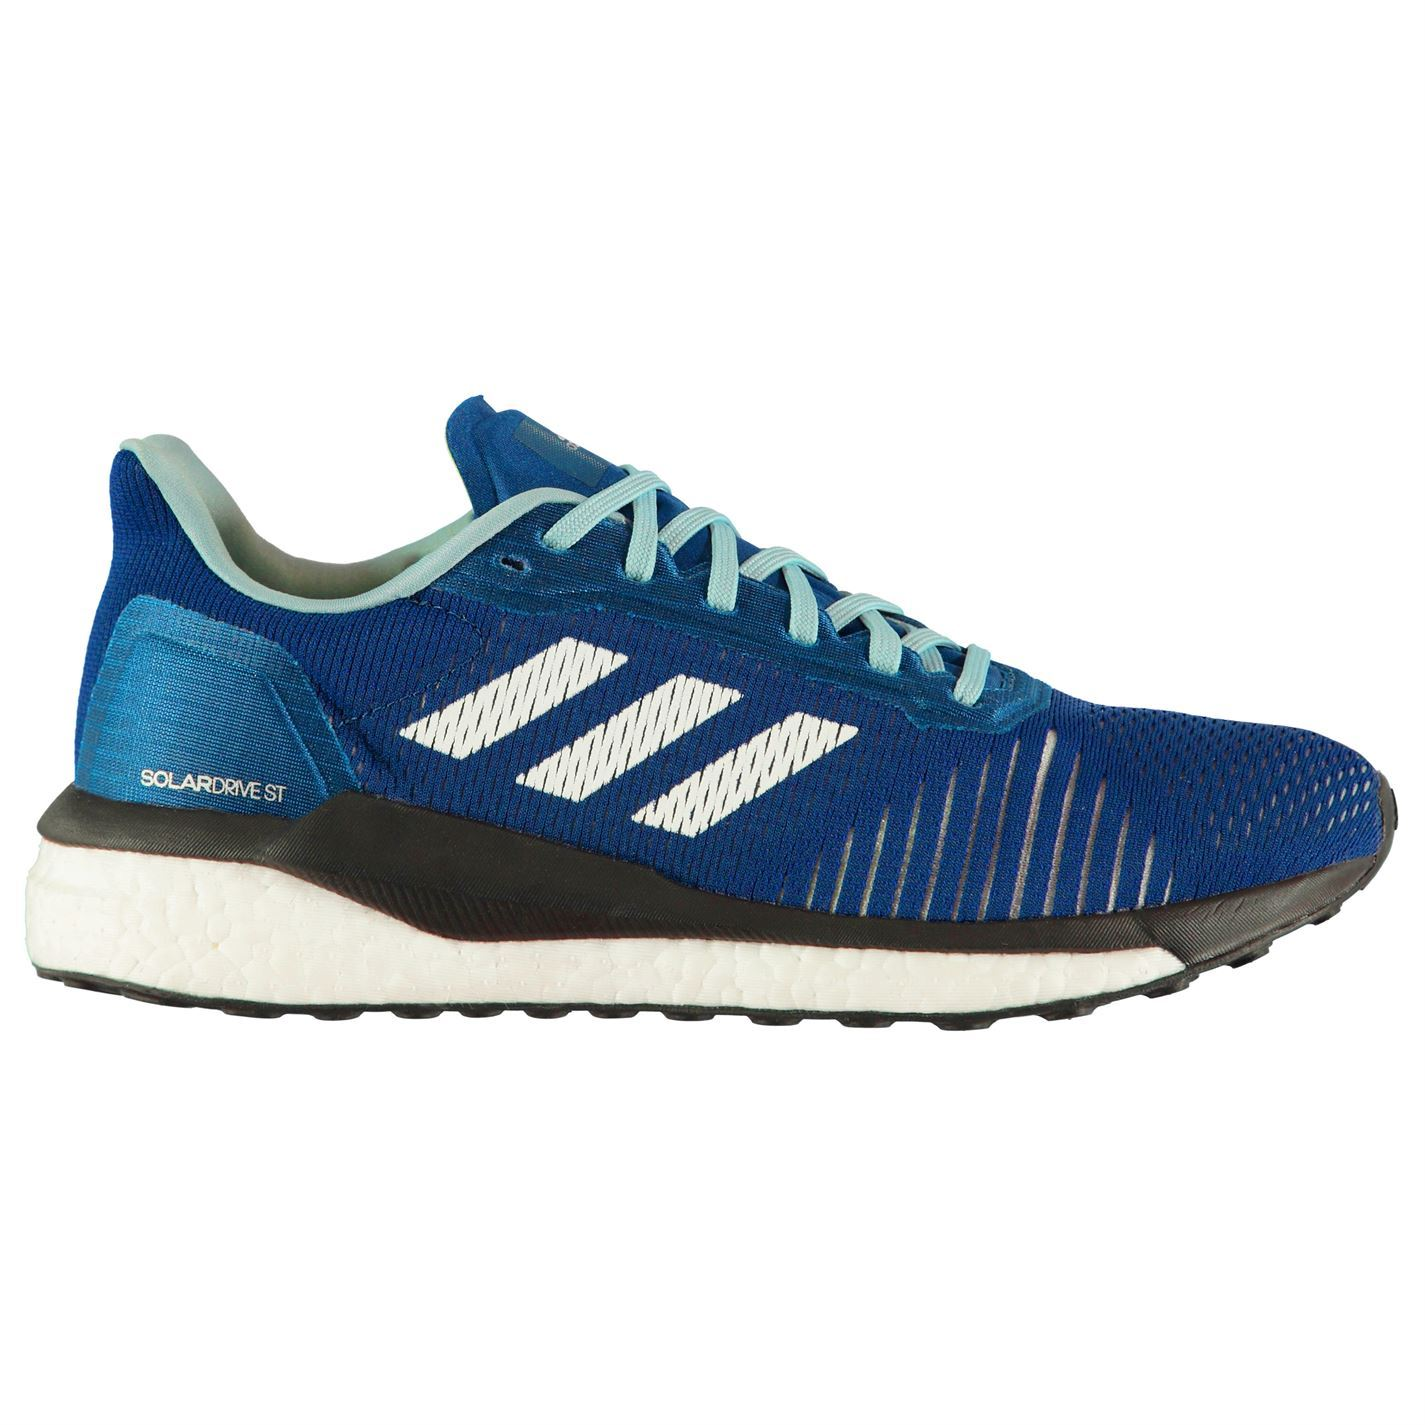 Blue About Original Men Adidas Show For Details Title St Drive Fitness Running Shoes Solar fyb7g6Y